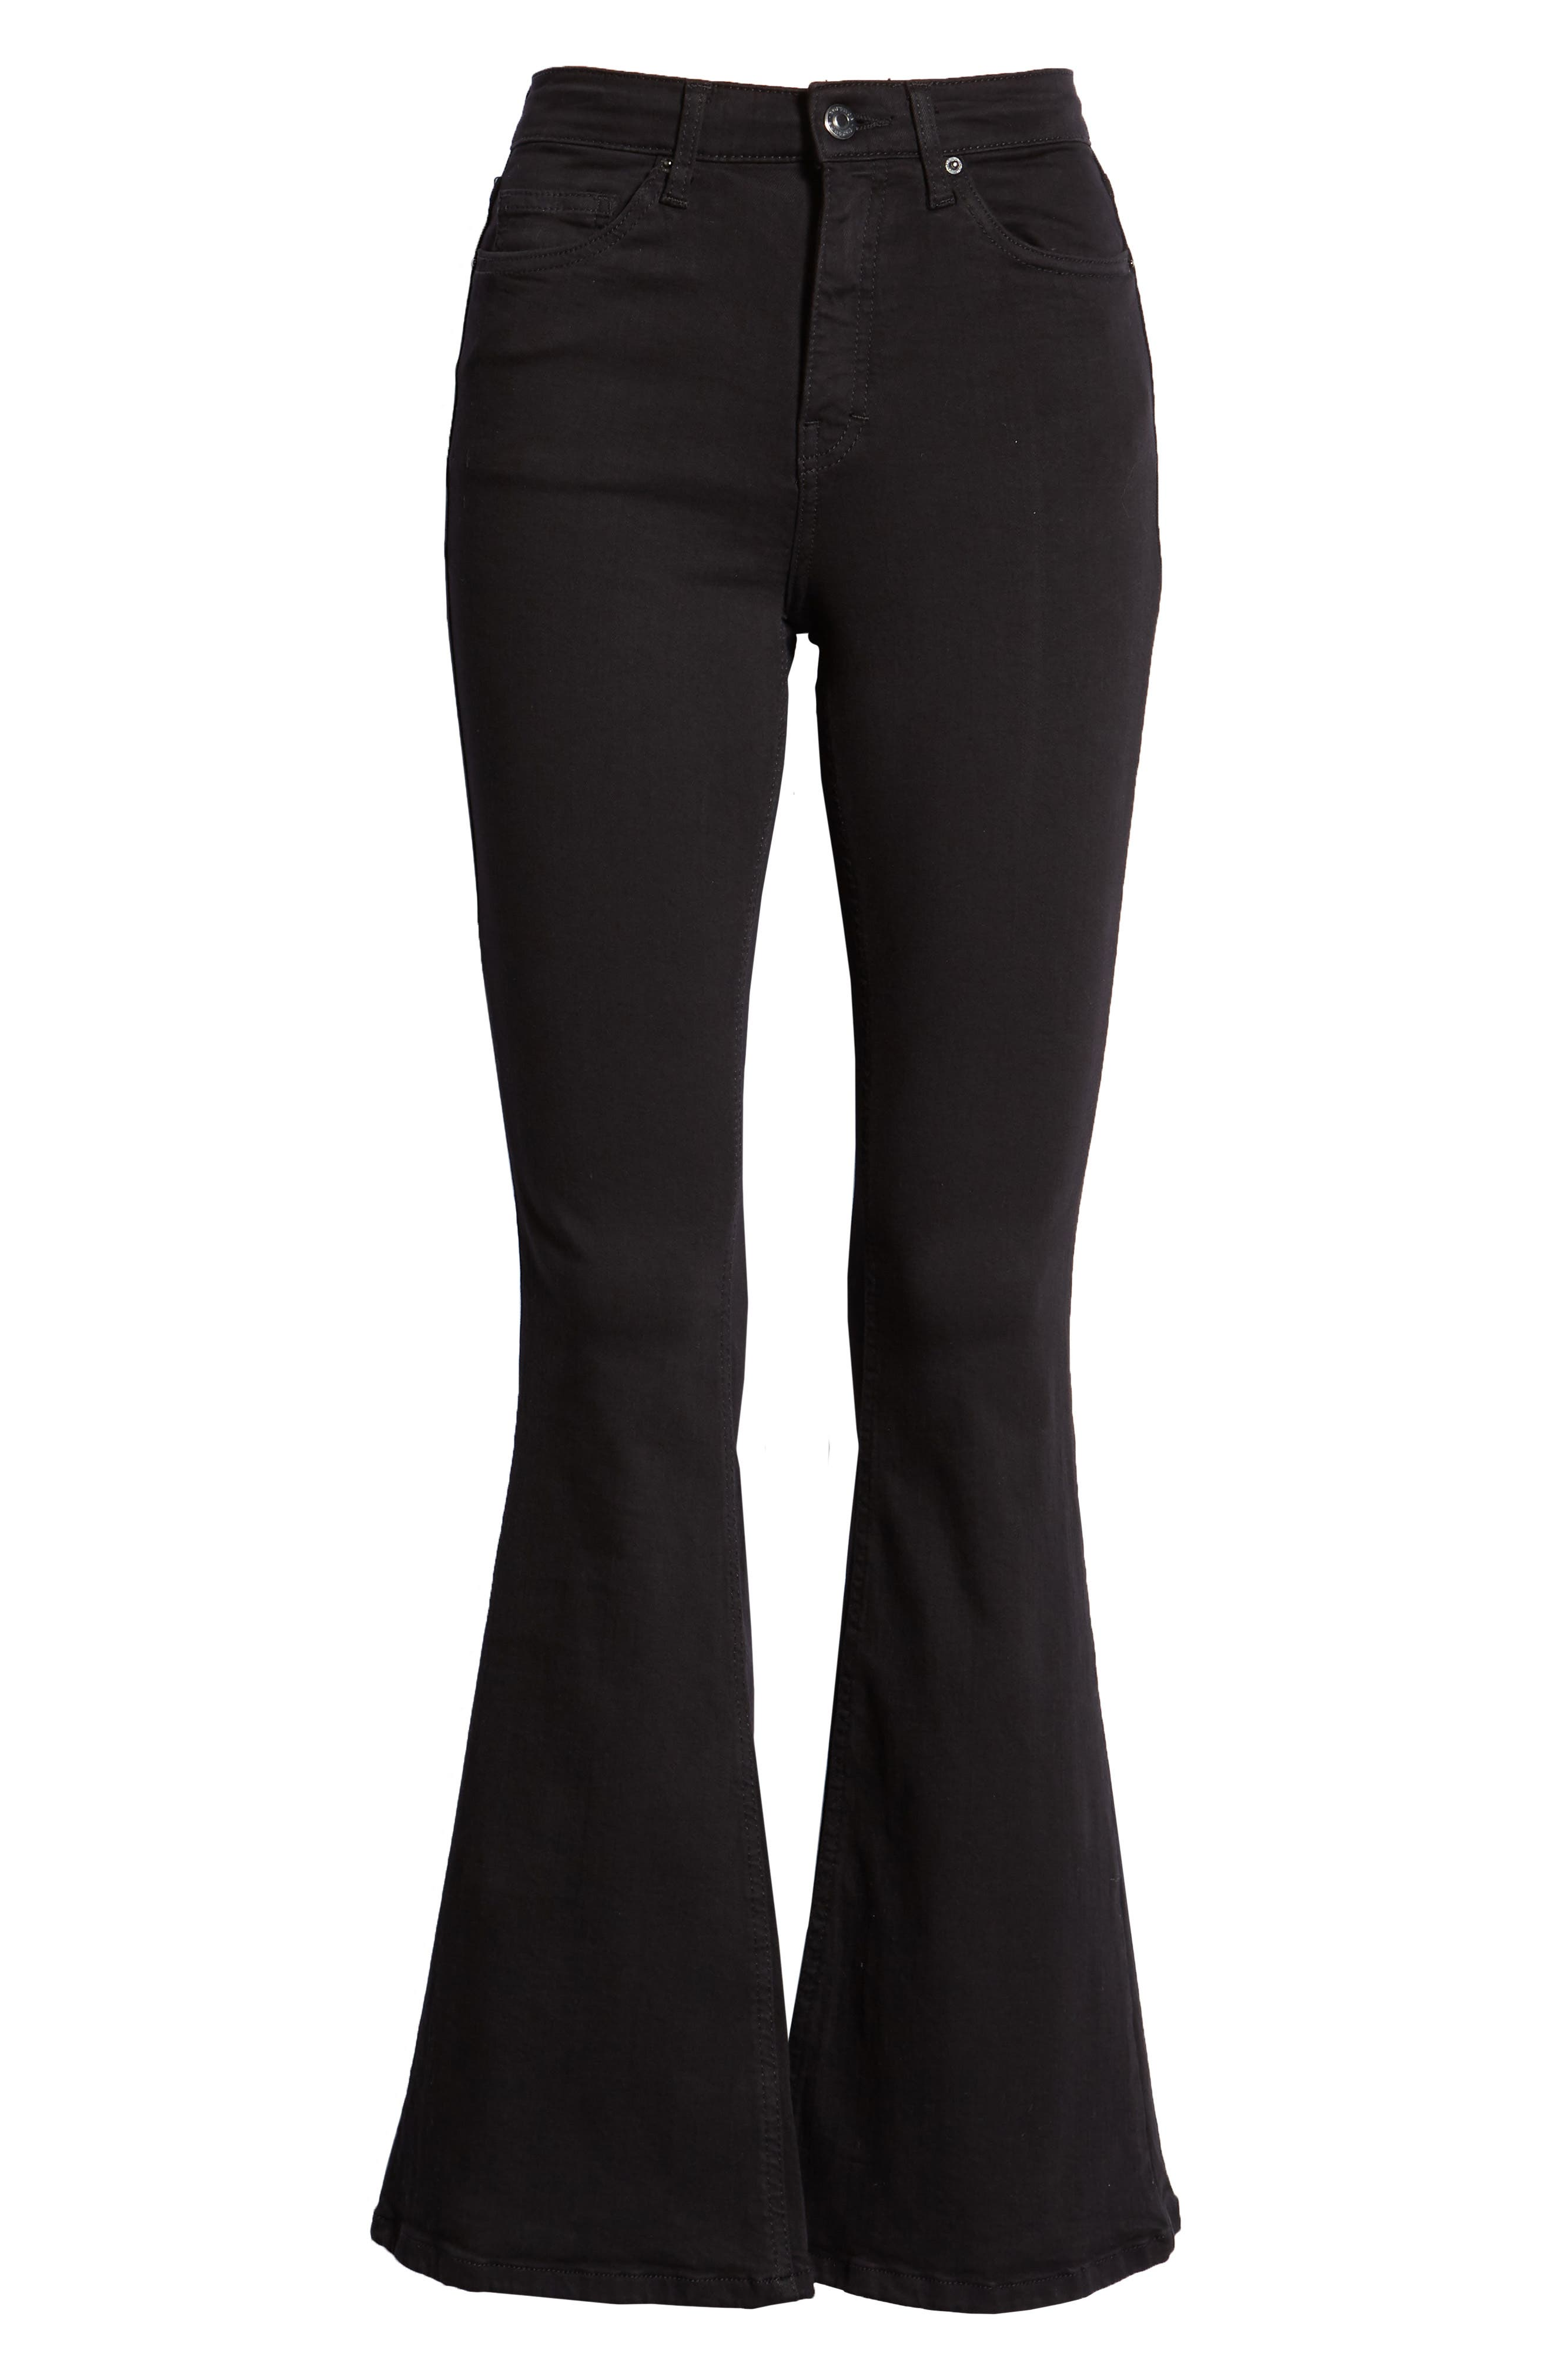 TOPSHOP, Jamie Flare Leg Jeans, Alternate thumbnail 7, color, OPEN BLACK